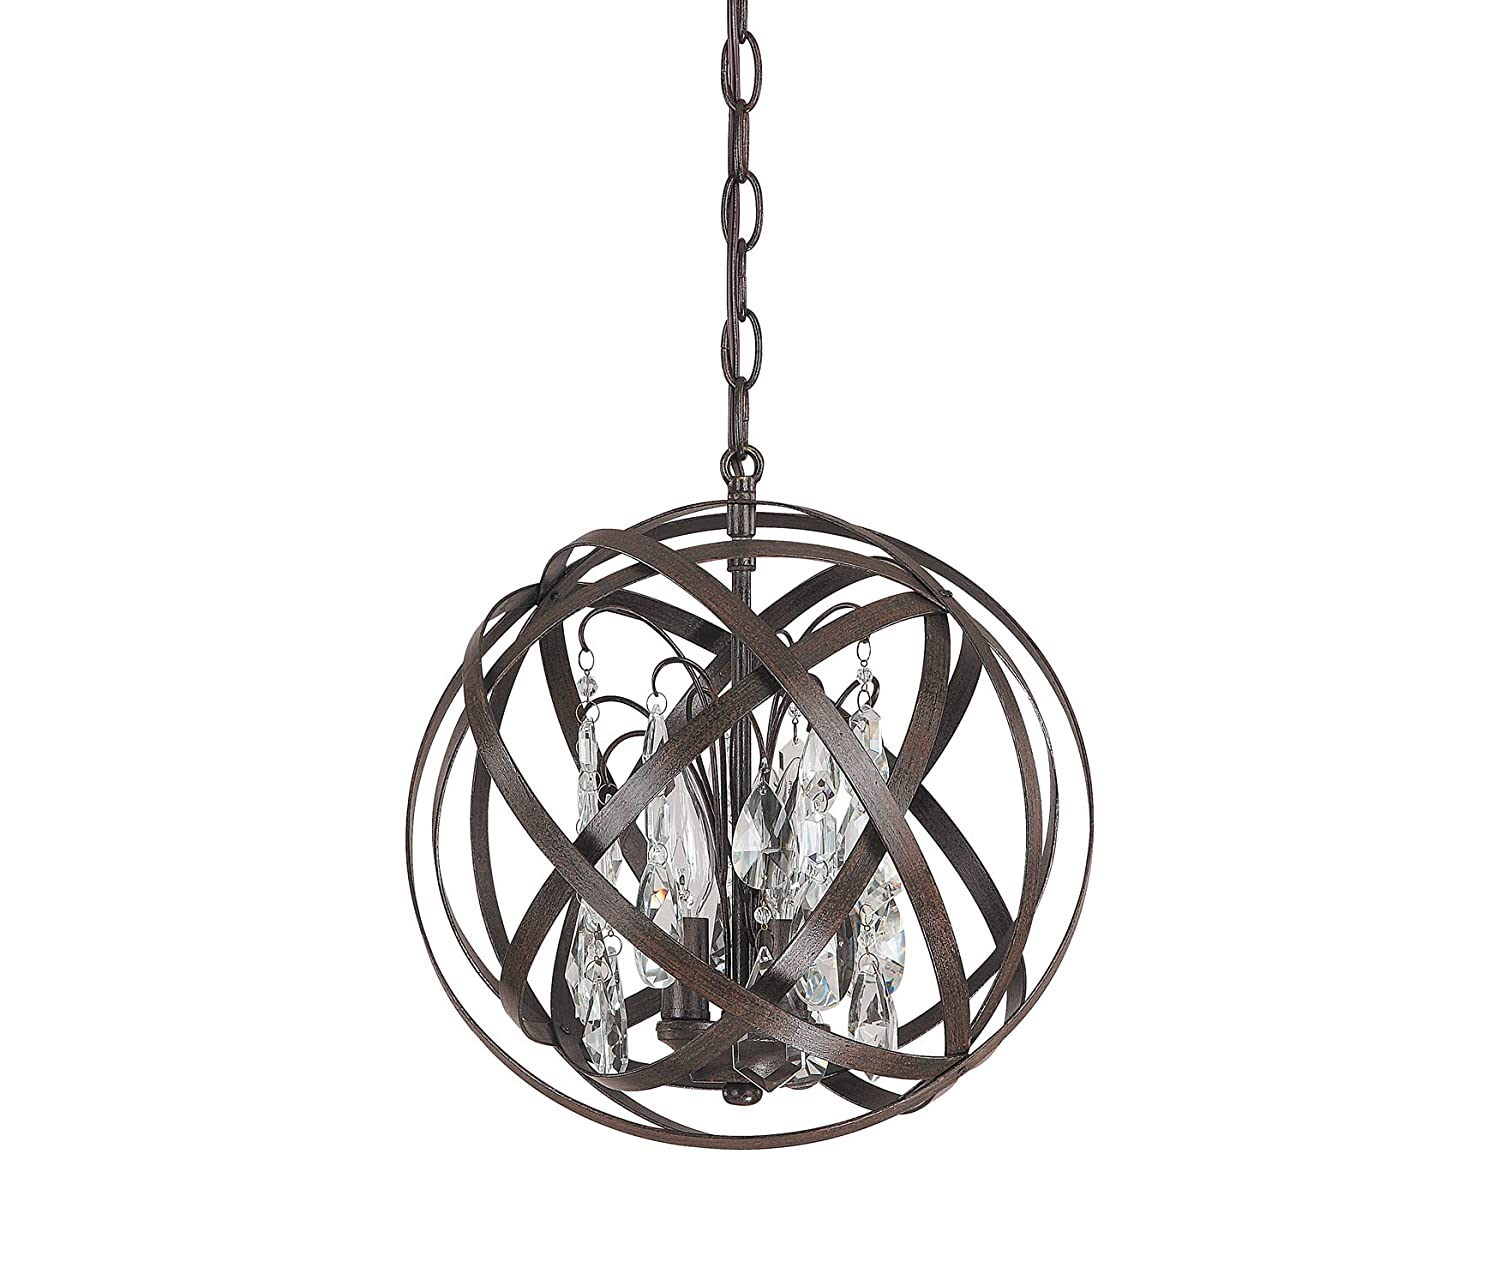 capital lighting 4233rs cr axis 3 light pendant russet finish with